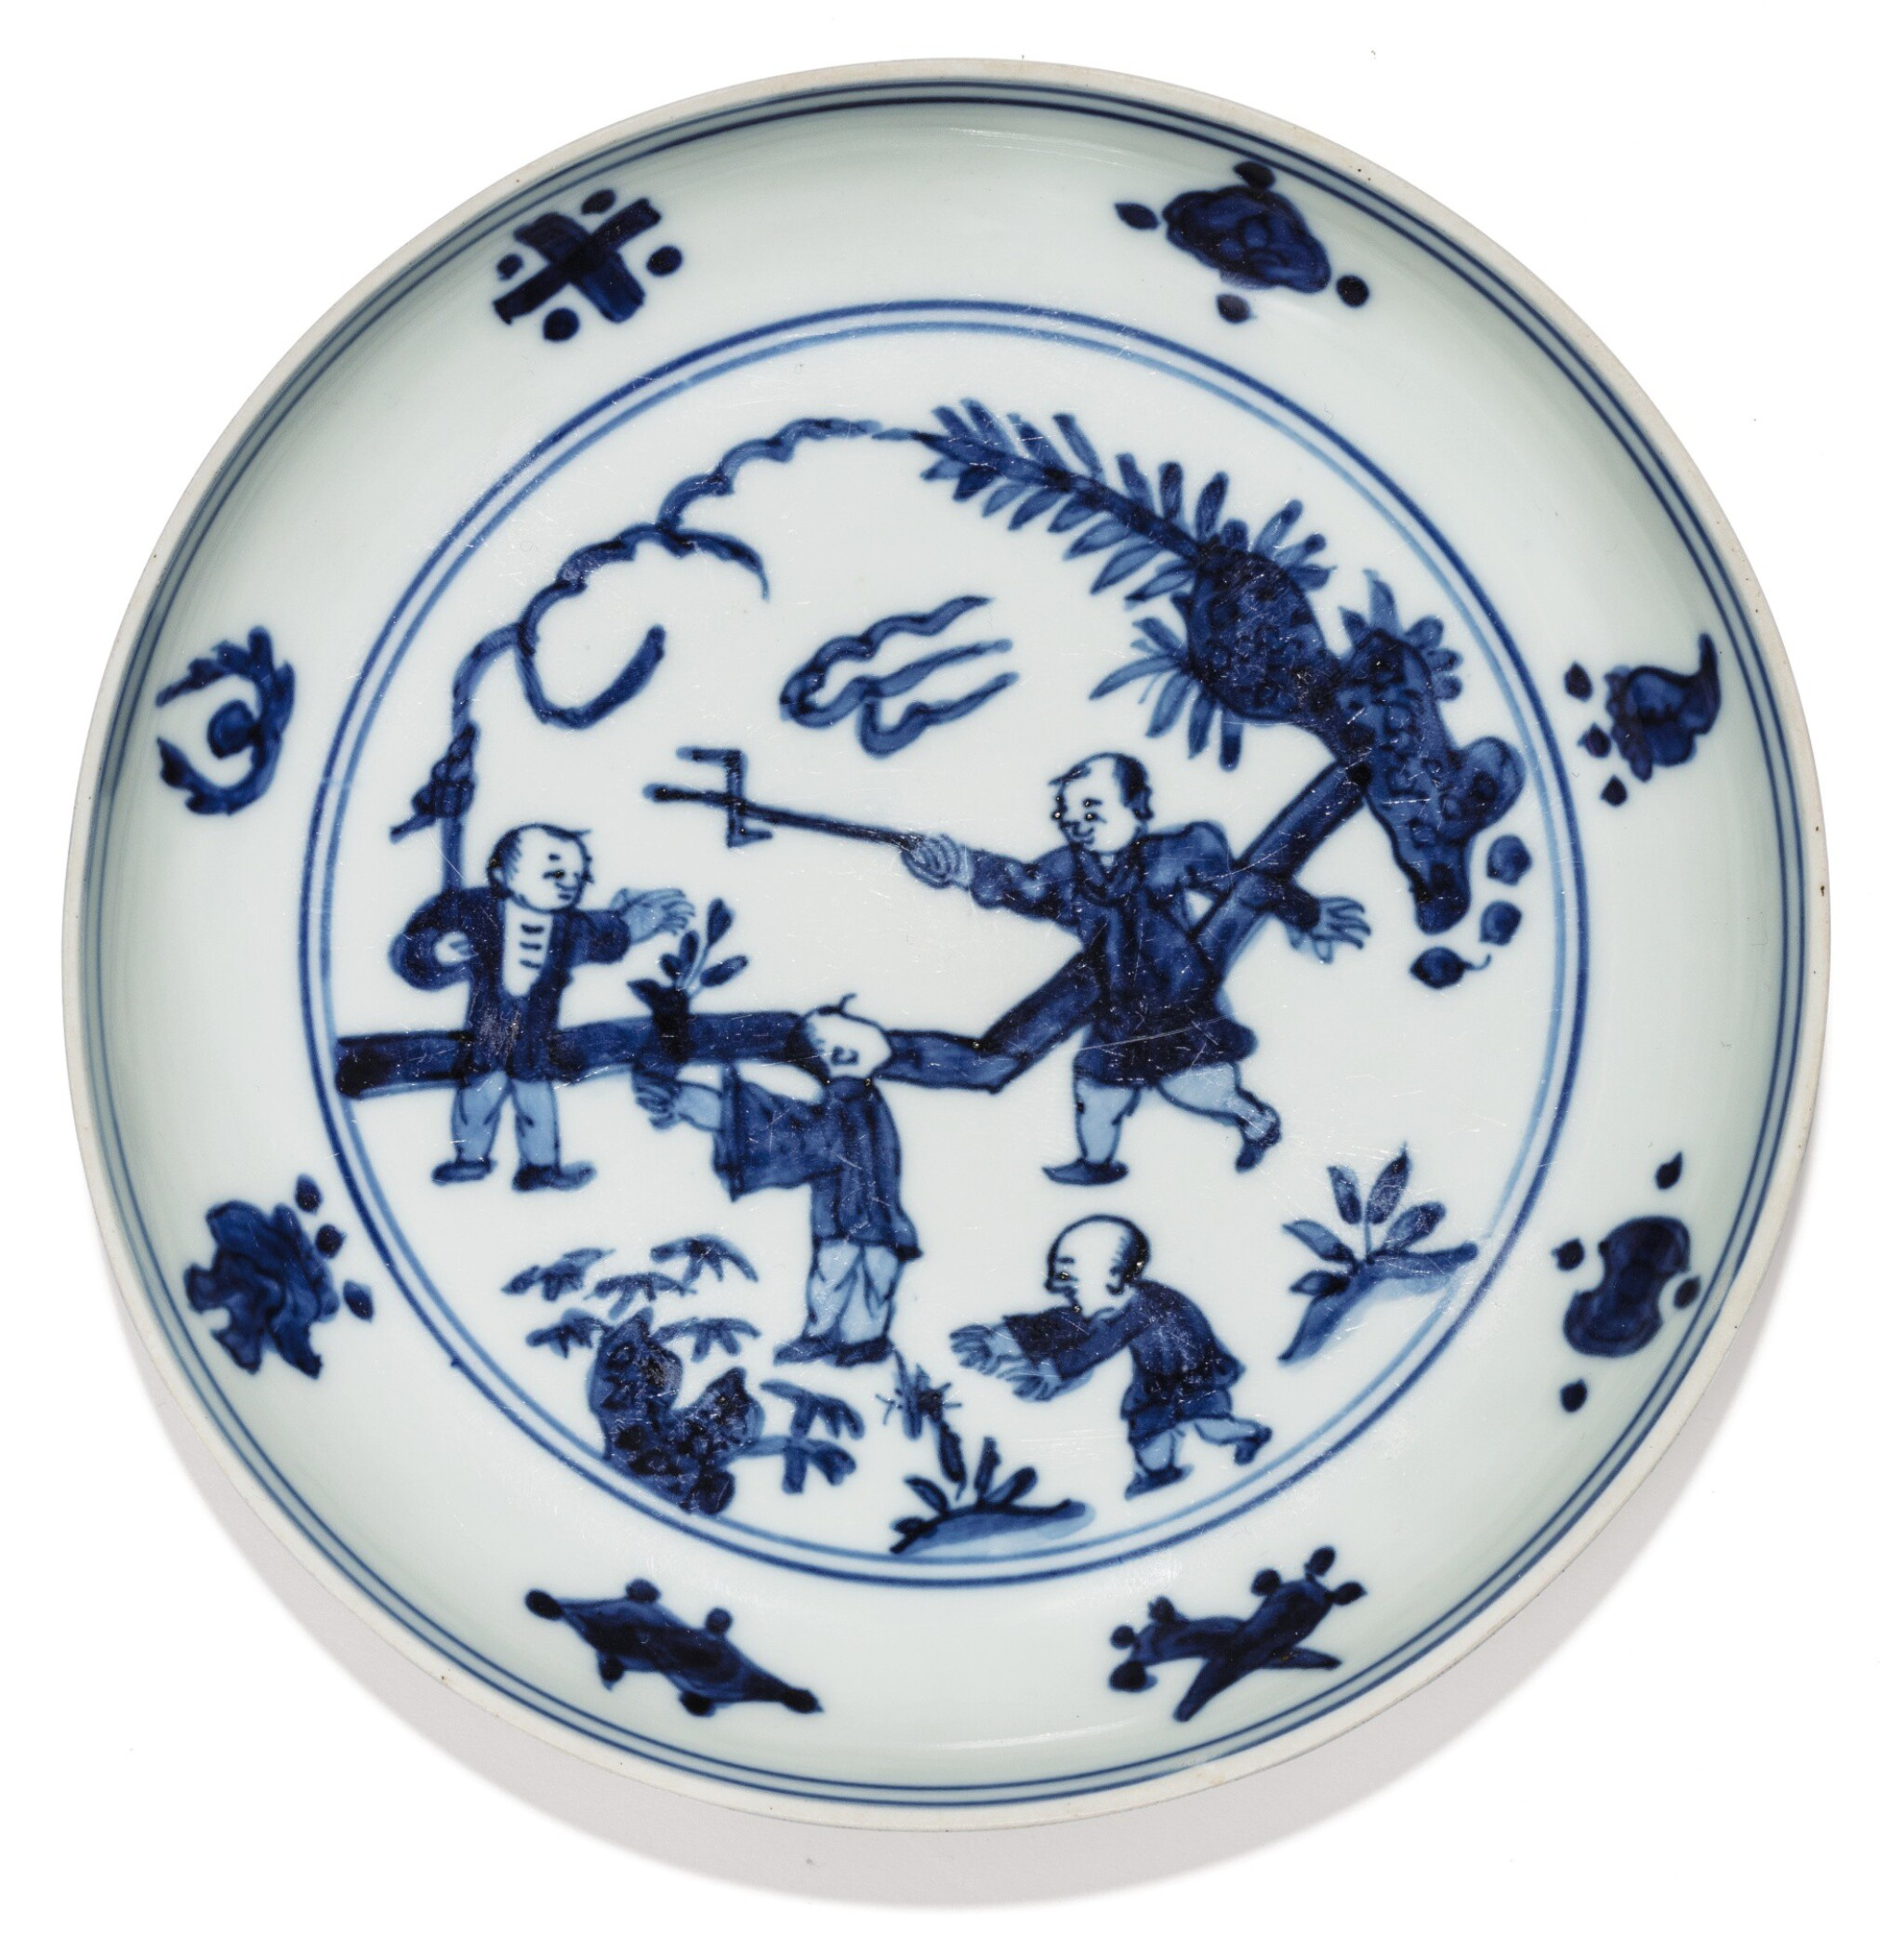 View 1 of Lot 3. COUPELLE EN PORCELAINE BLEU BLANC MARQUE ET ÉPOQUE JIAJING | 明嘉靖 青花嬰戲圖小盤  《大明嘉靖年製》款 | A blue and white 'boys' saucer-dish, Jiajing mark and period.